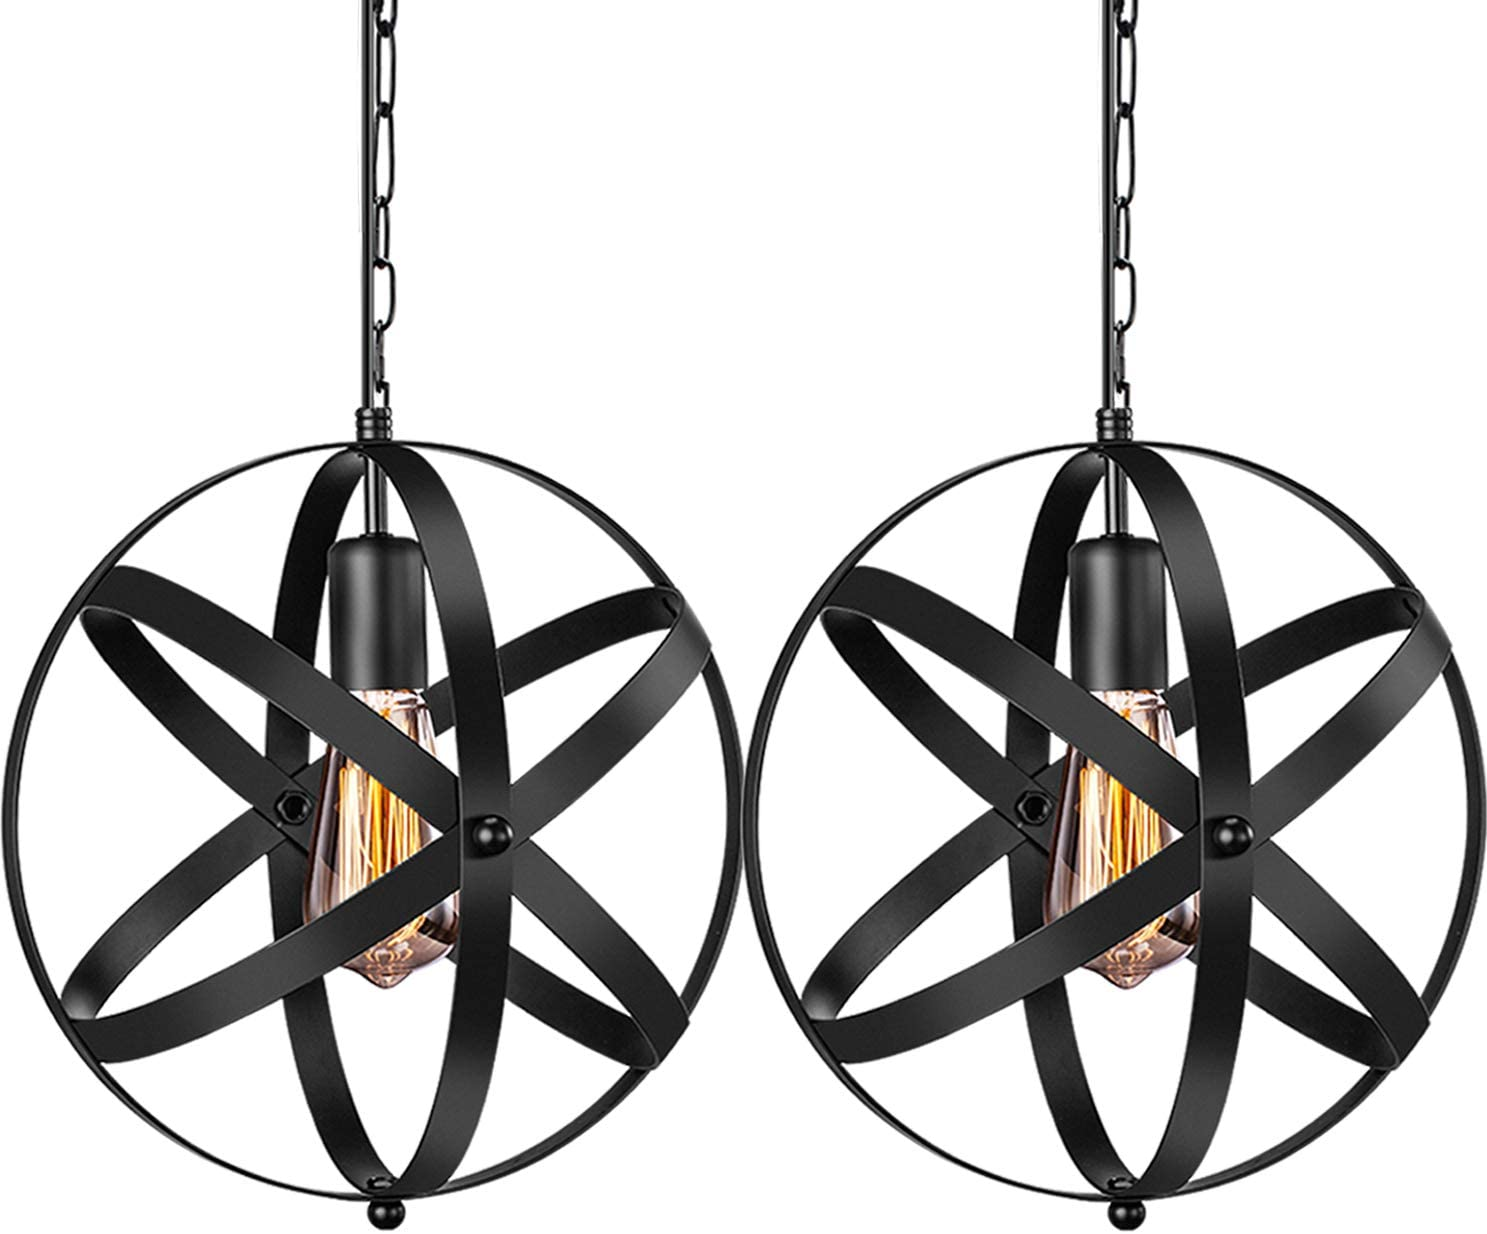 Kira Home Woodrow 15 3-Light Industrial Farmhouse Semi Flush Convertible Pendant Light with Drum Shade, Dark Wood Style Textured Black Finish